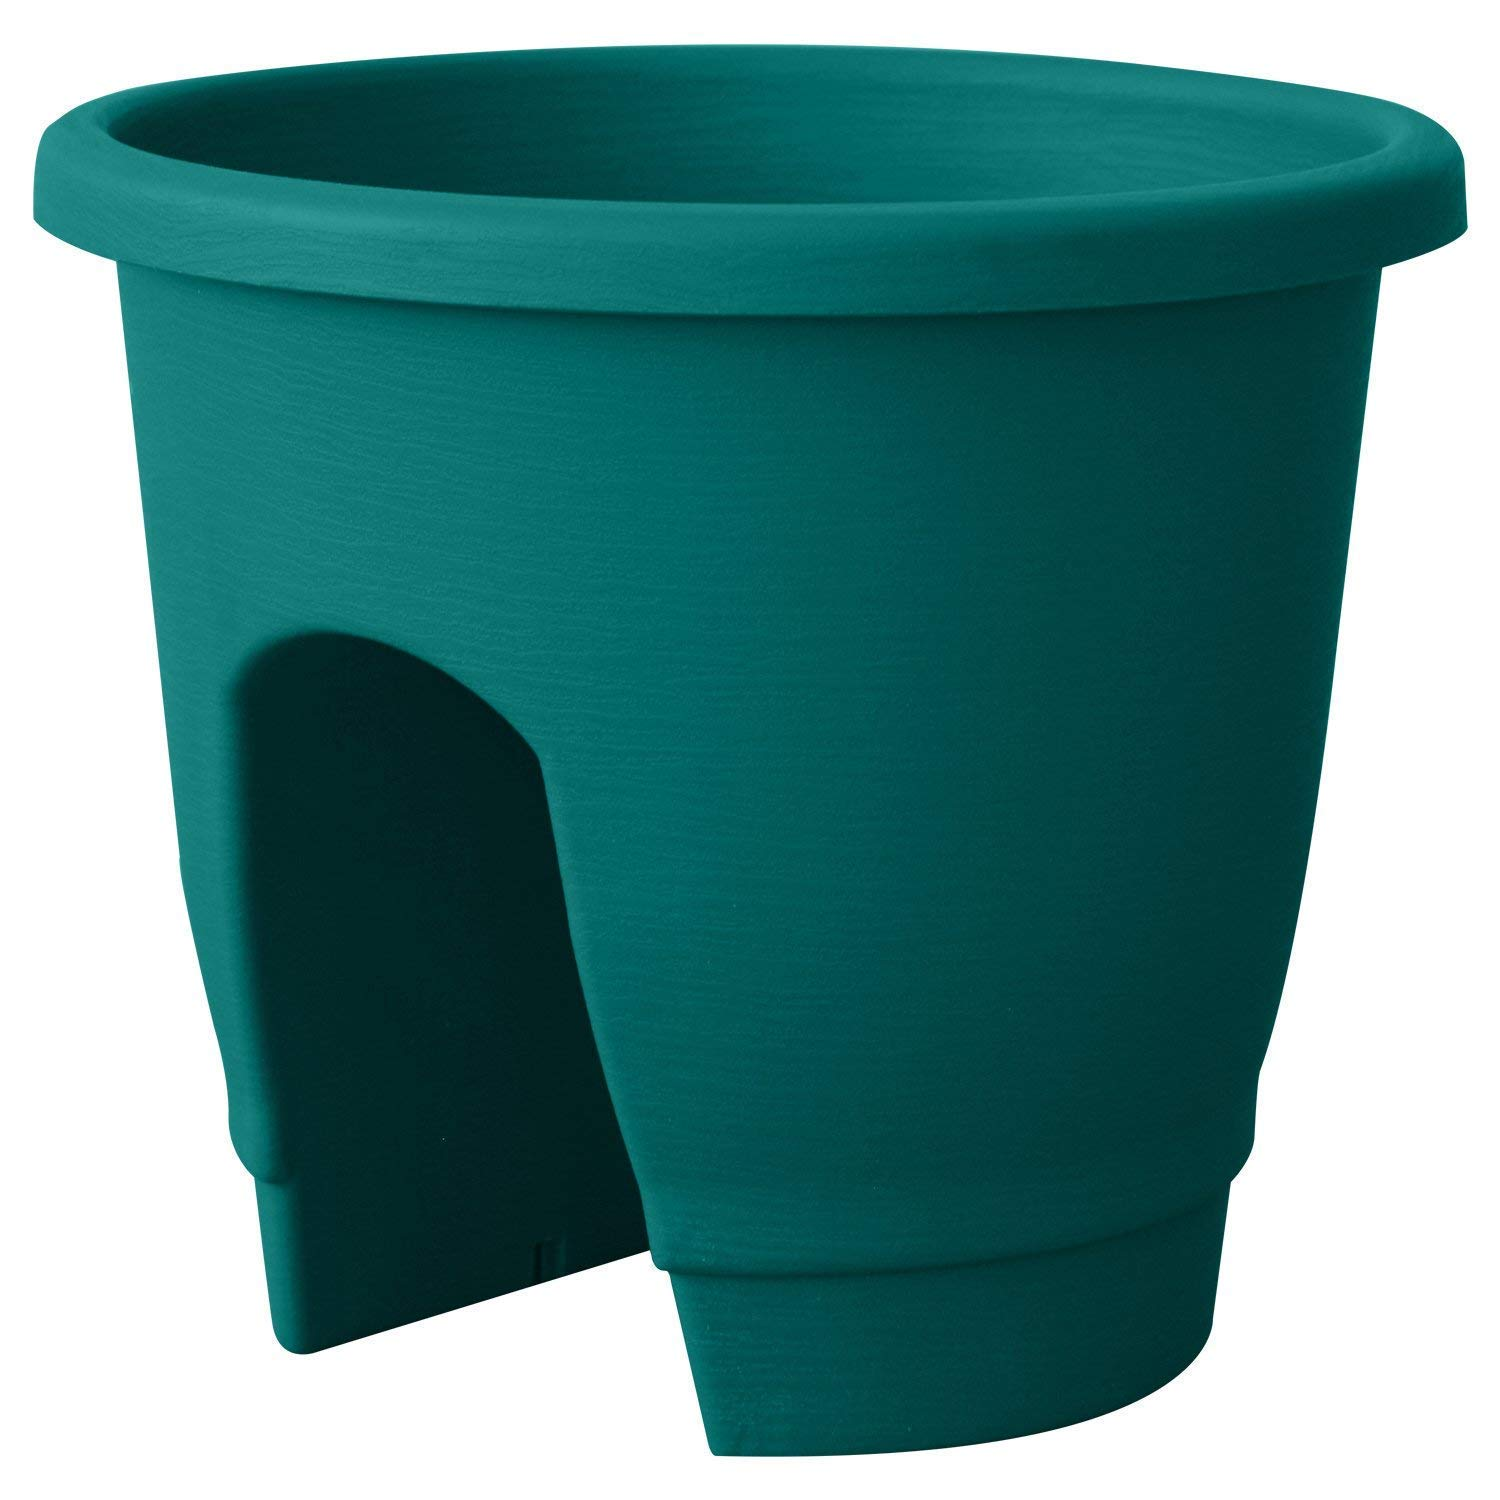 ALMI Balcony Deck Rail Planter Box with Drainage Trays, Bloomers Railing Round Pot, Drainage Holes, Weatherproof Resin Planter, 12 Inch, Indoor & Outdoor, 2 Pack, Turquoise